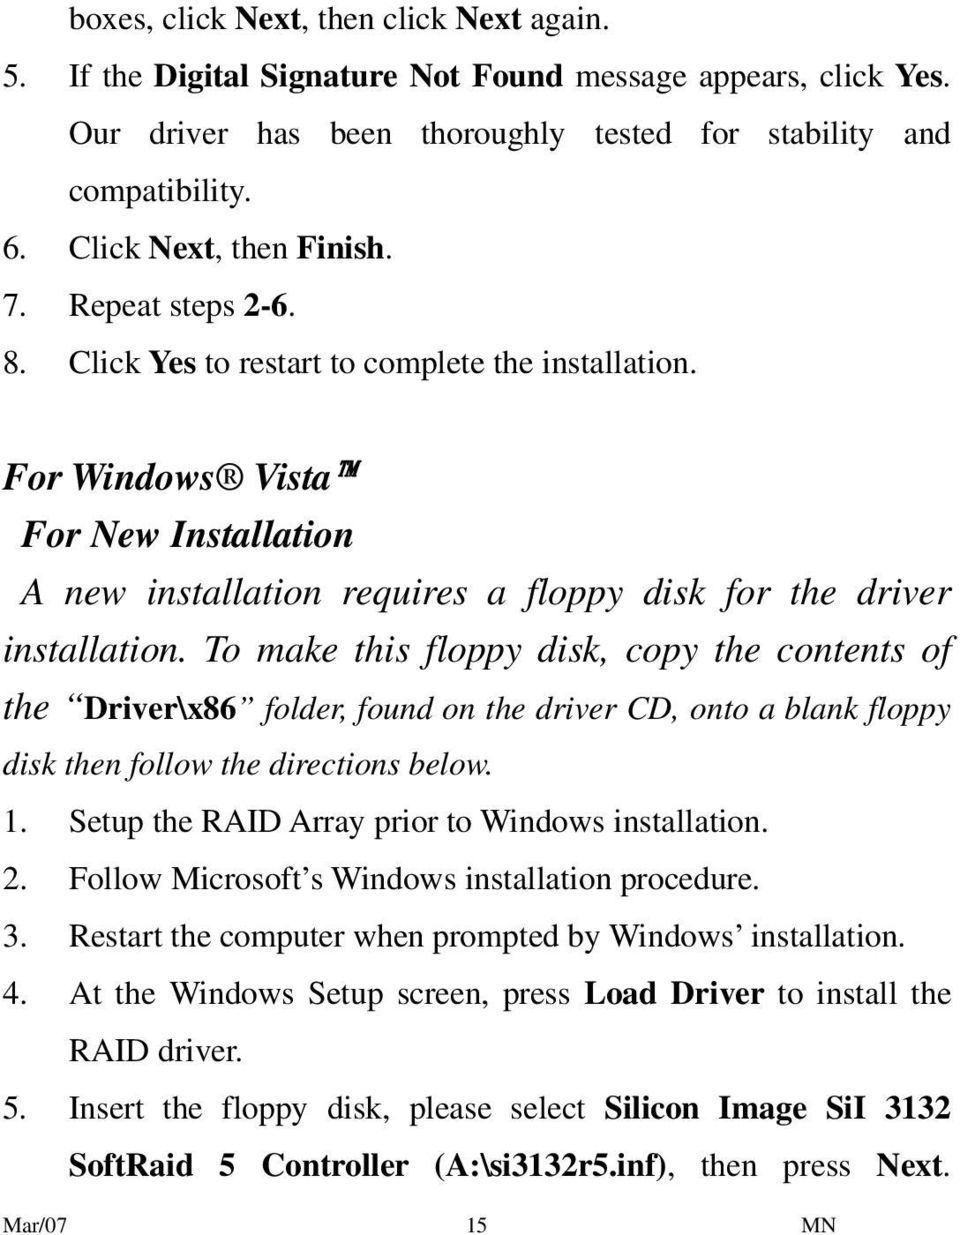 For Windows Vista For New Installation A new installation requires a floppy disk for the driver installation.